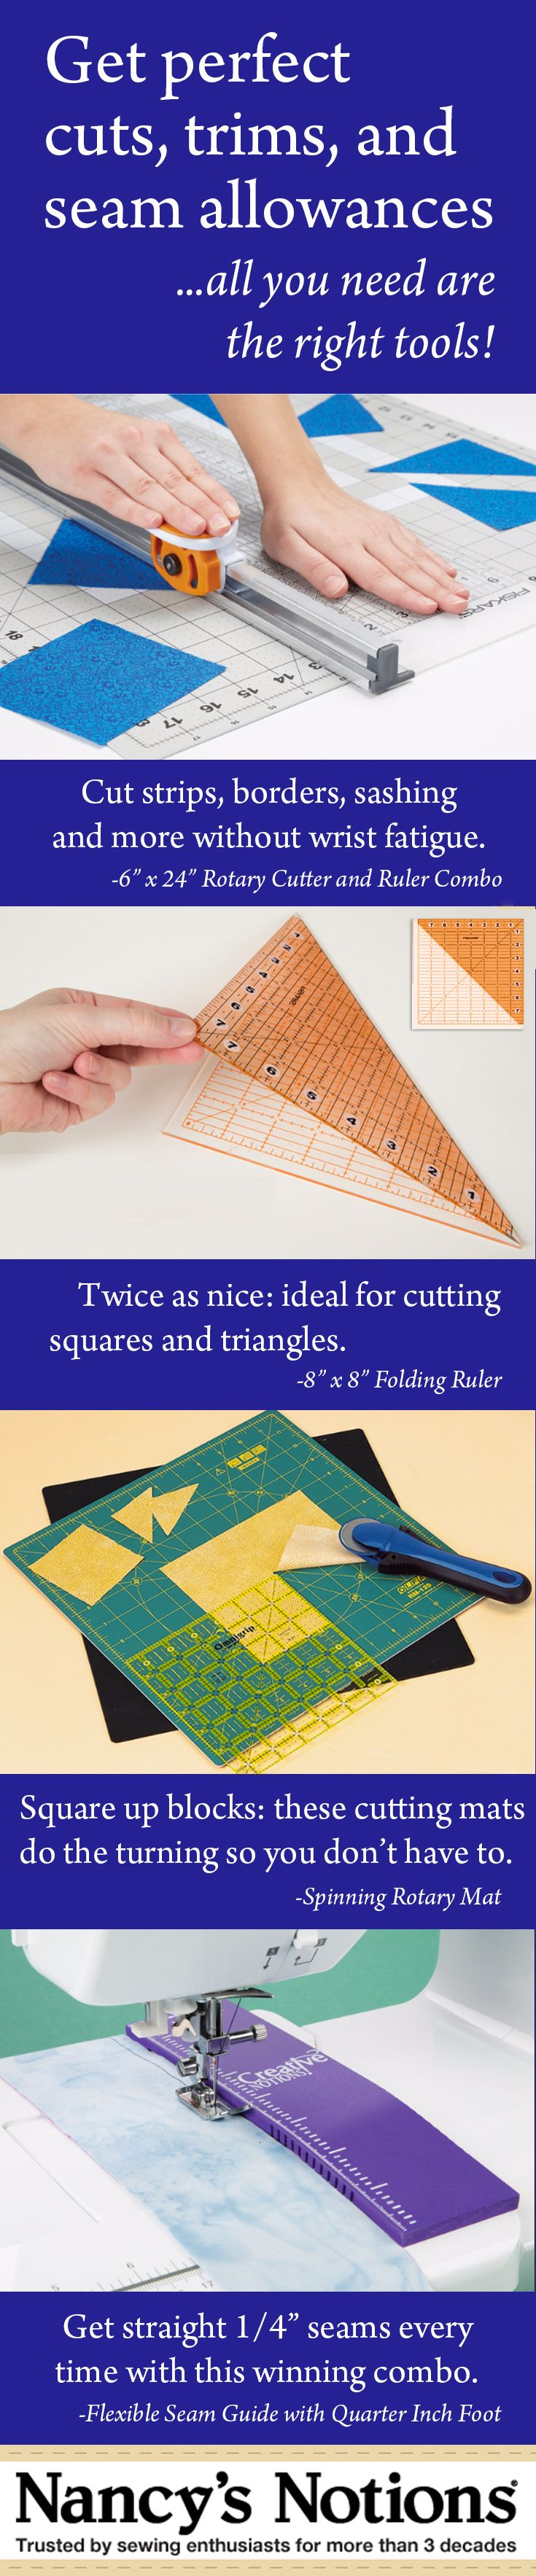 Get perfect cuts, trims, and seam allowances with the right tools - Rotary Cutter and Ruler Combo - Fiskars Folding Ruler - Spinning Rotary Mat - Flexible Seam Guide with Quarter Inch Foot - Nancy's Notions - Sewing and quilting - quilting for beginners supplies -